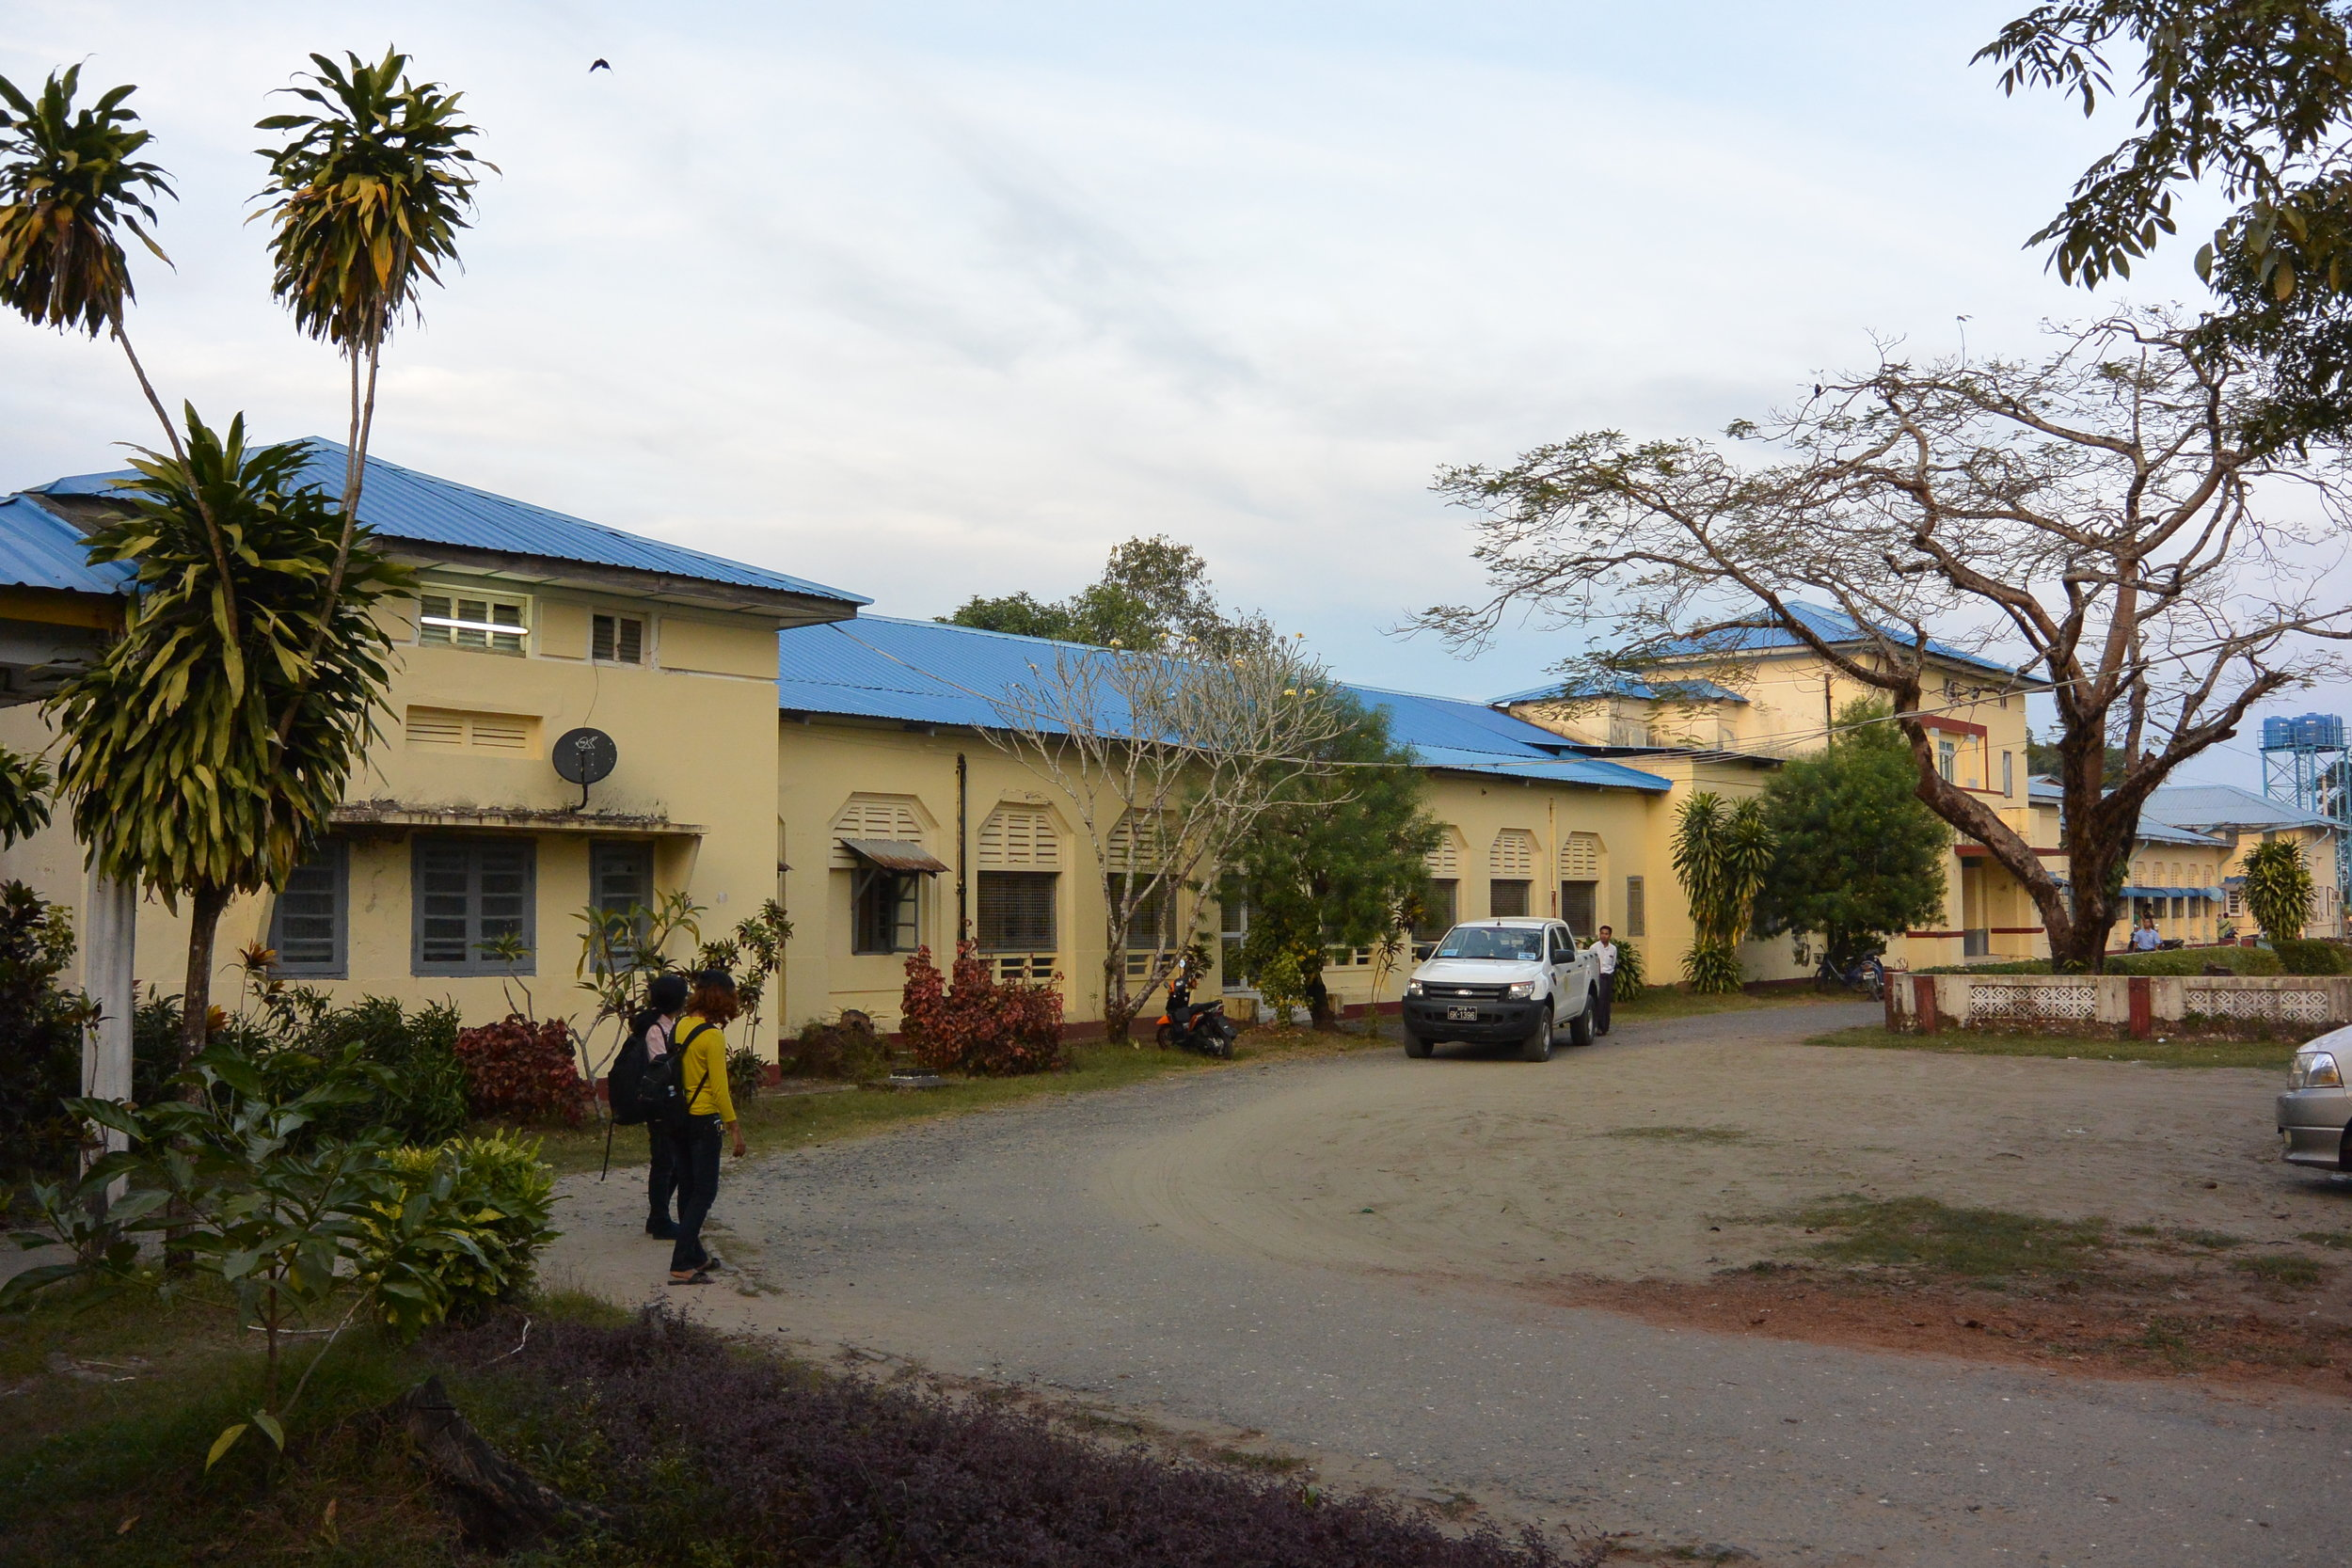 Main entrance to the existing hospital